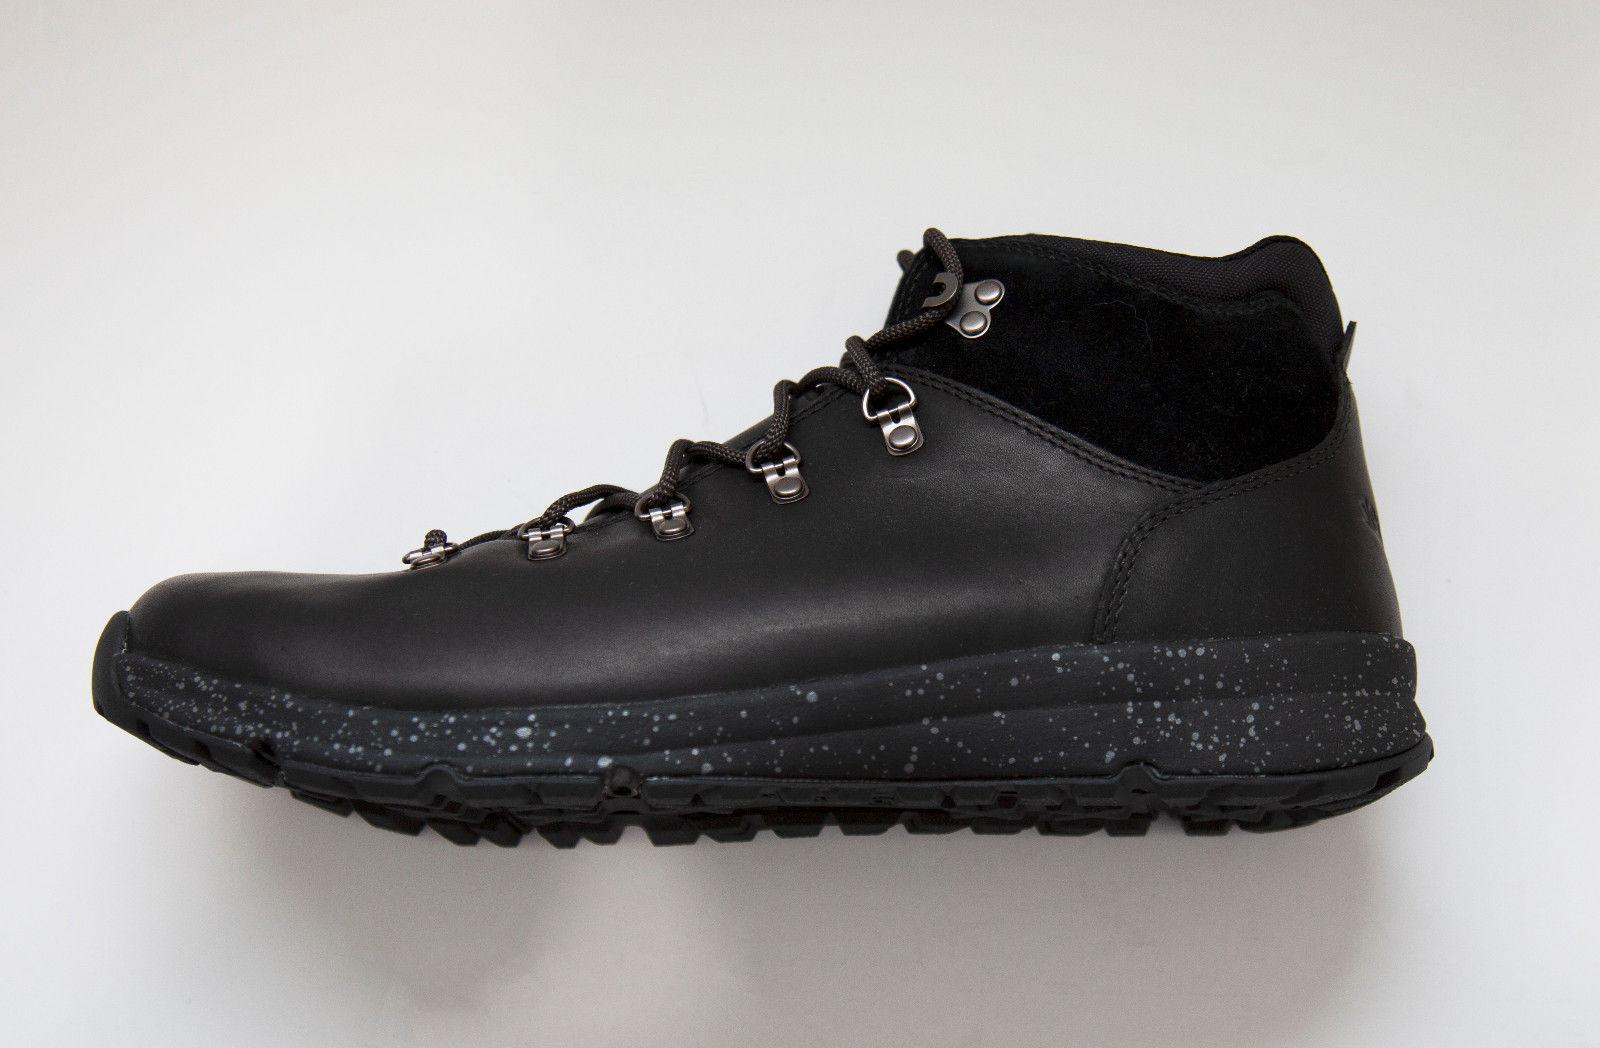 Hiking Boots Size